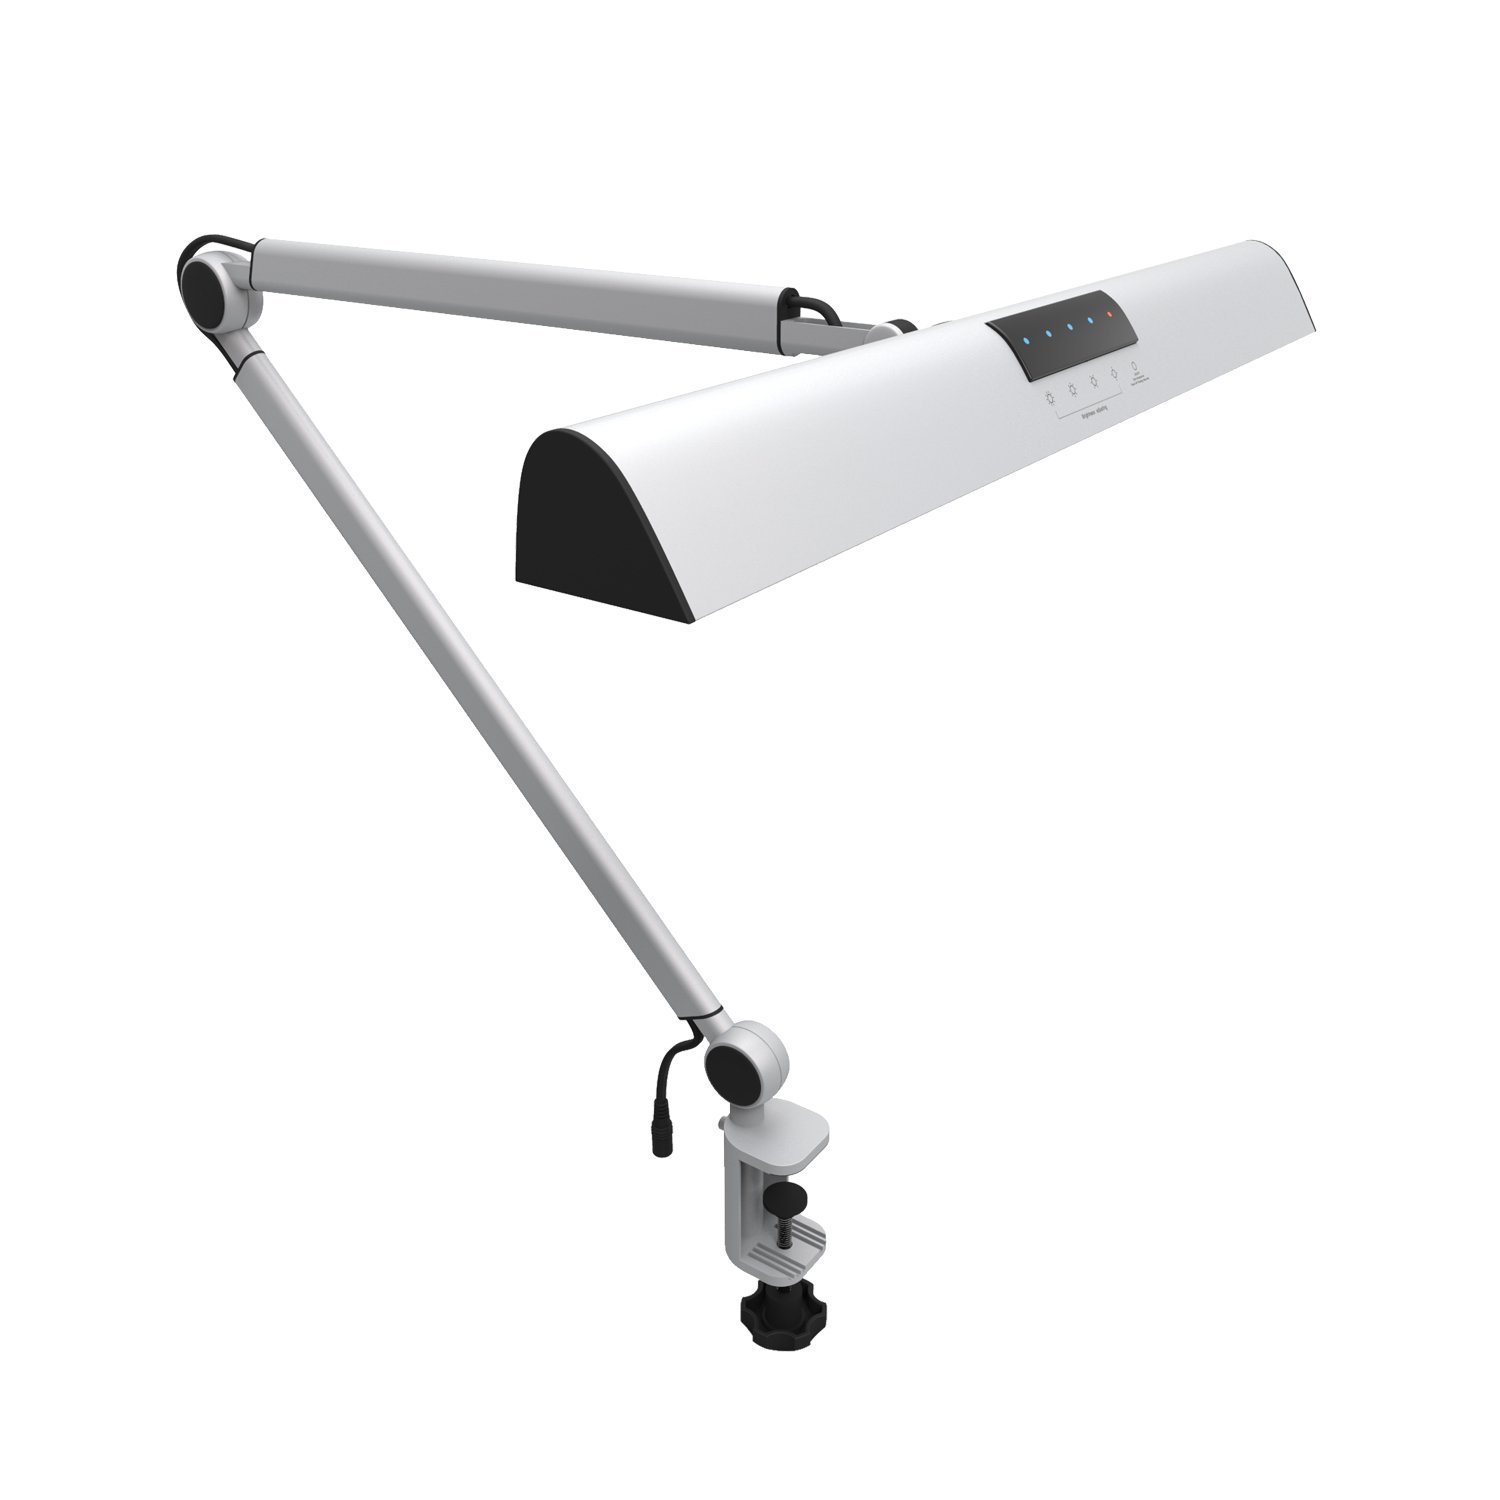 a509 led swing arm architect desk lamp clamp drafting table lamp for reading working silver - Swing Arm Lamp